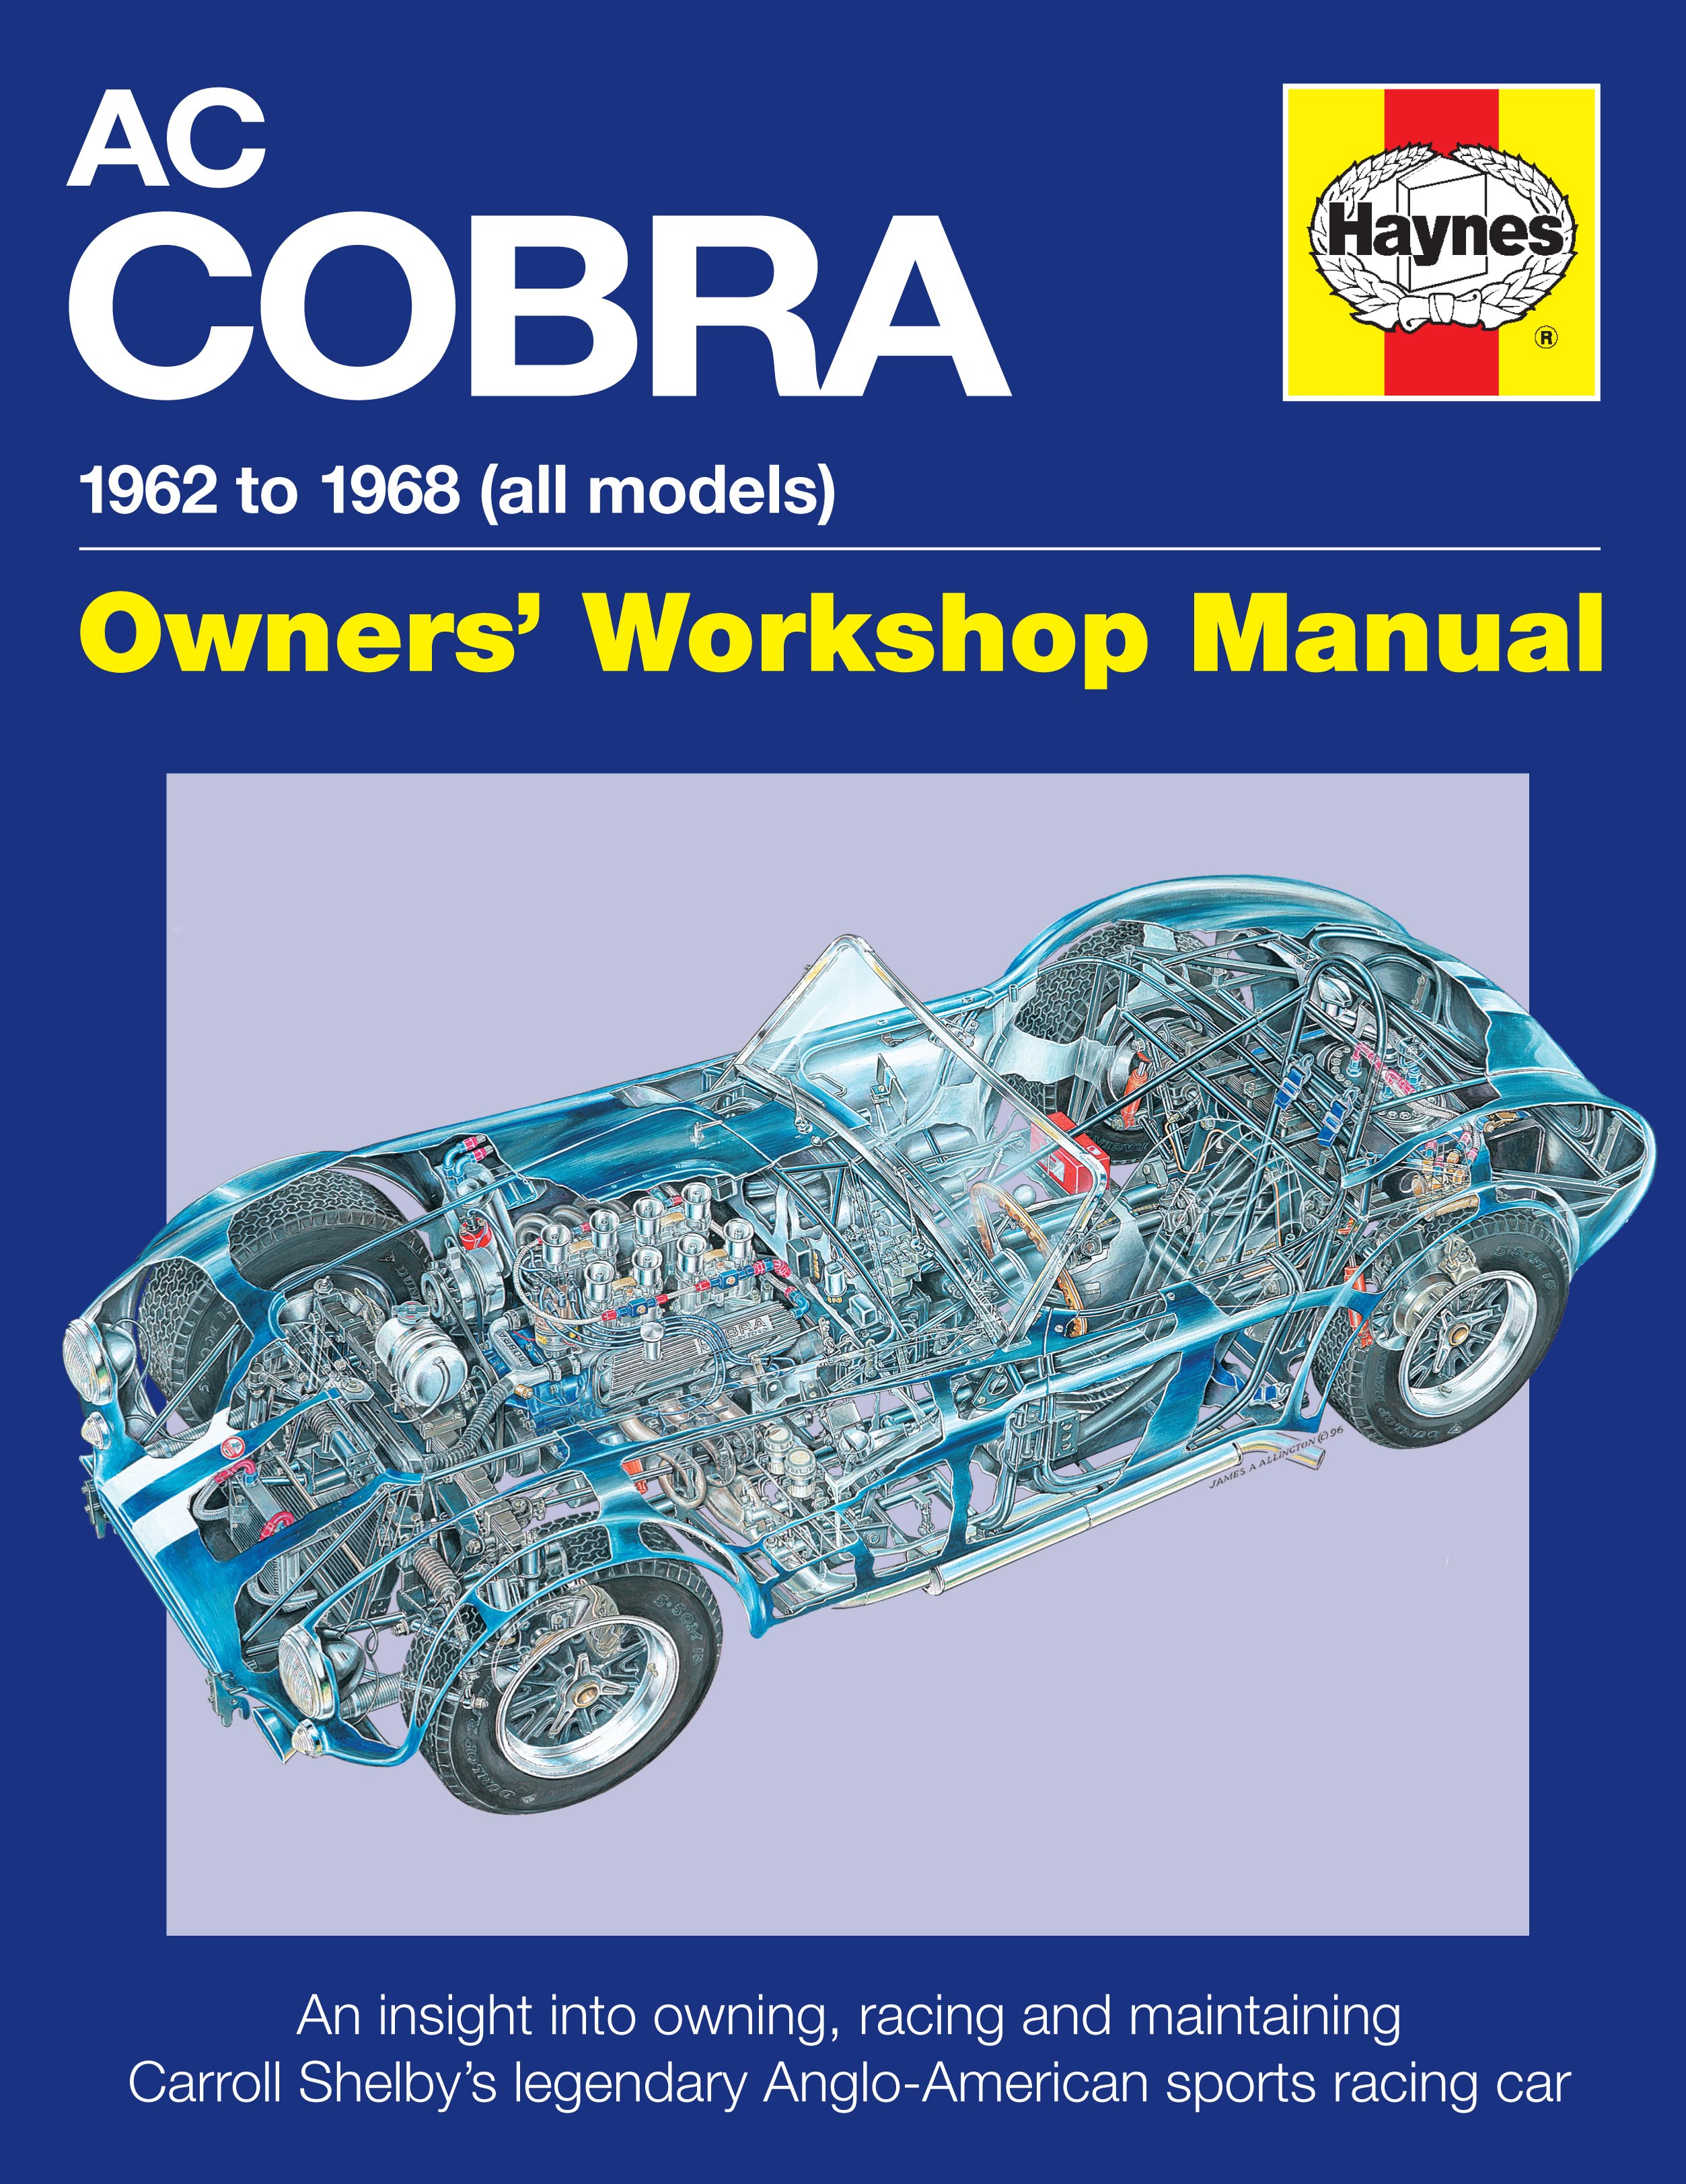 ford ac shelby cobra 1962 to 1968 owner s workshop manual book rh ebay com ford expedition ac manual Air Conditioner Repair Guide